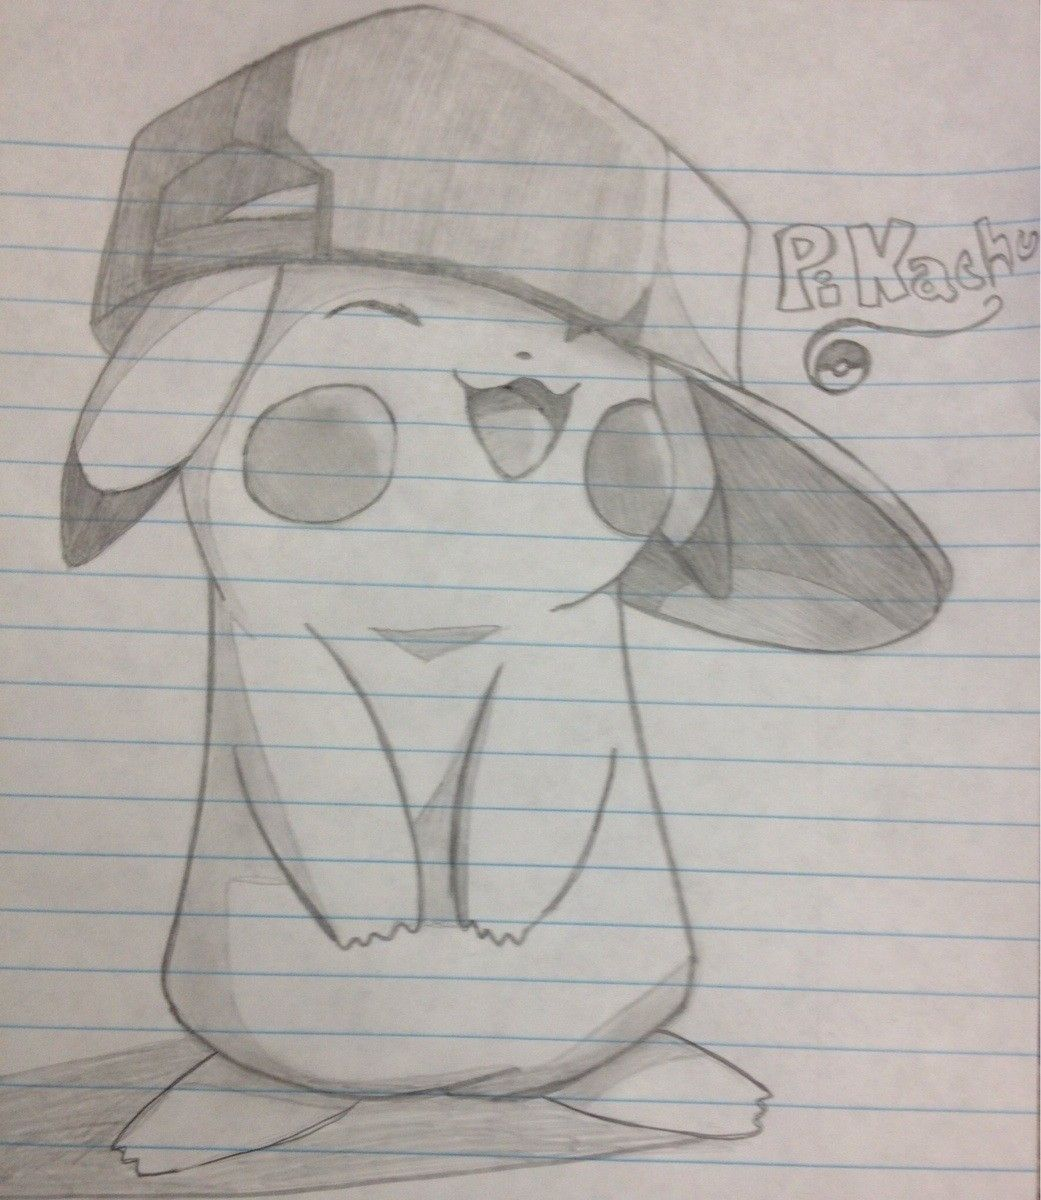 cute pikachu to draw when bored cool drawing ideas